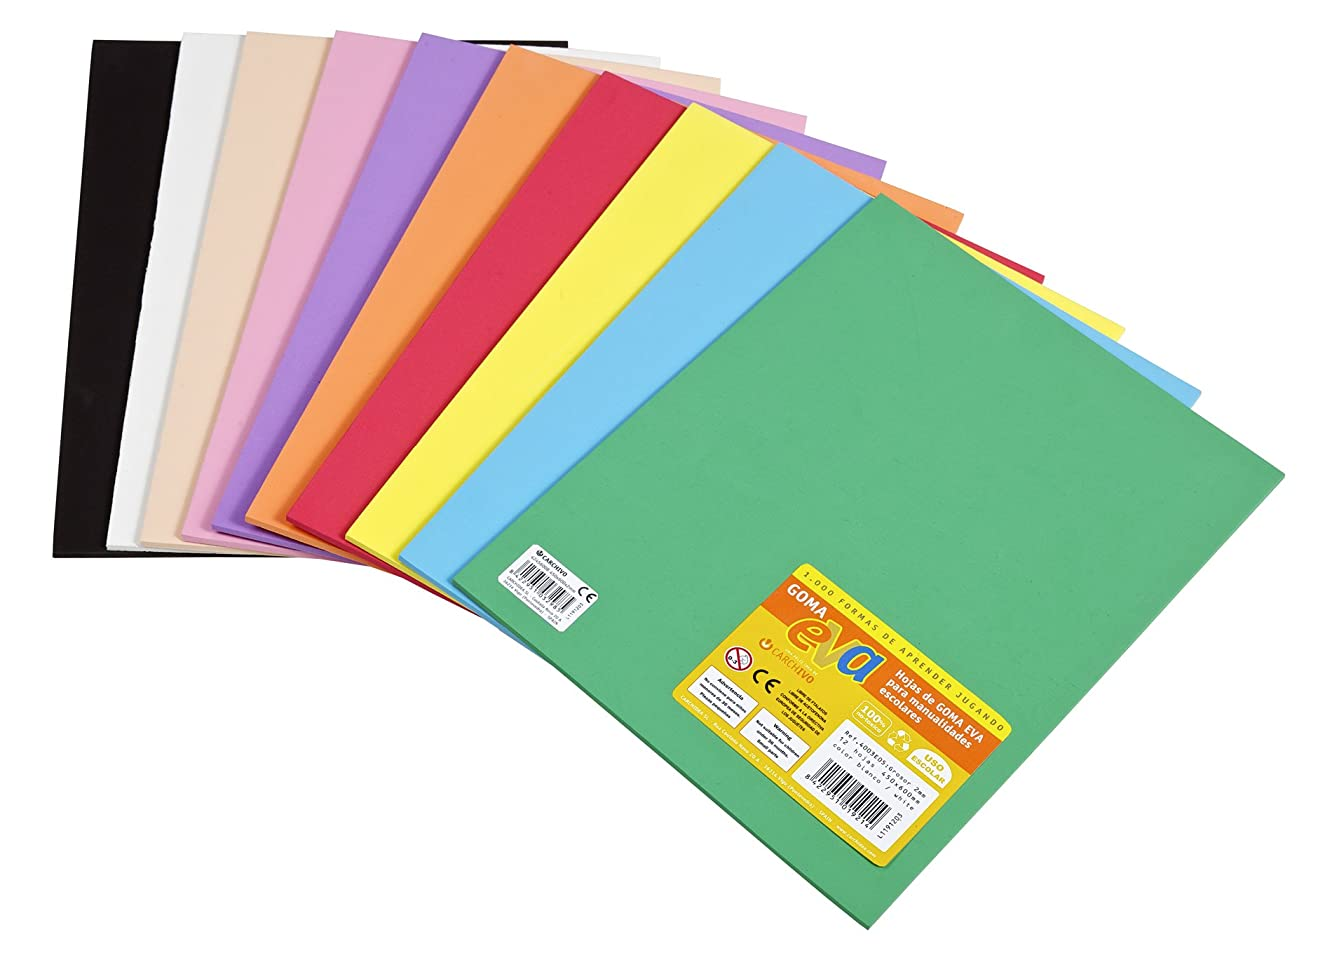 Carchivo 133319 - Pack 10 Eva Foam Sheets 2mm 220X295, Assorted Colours